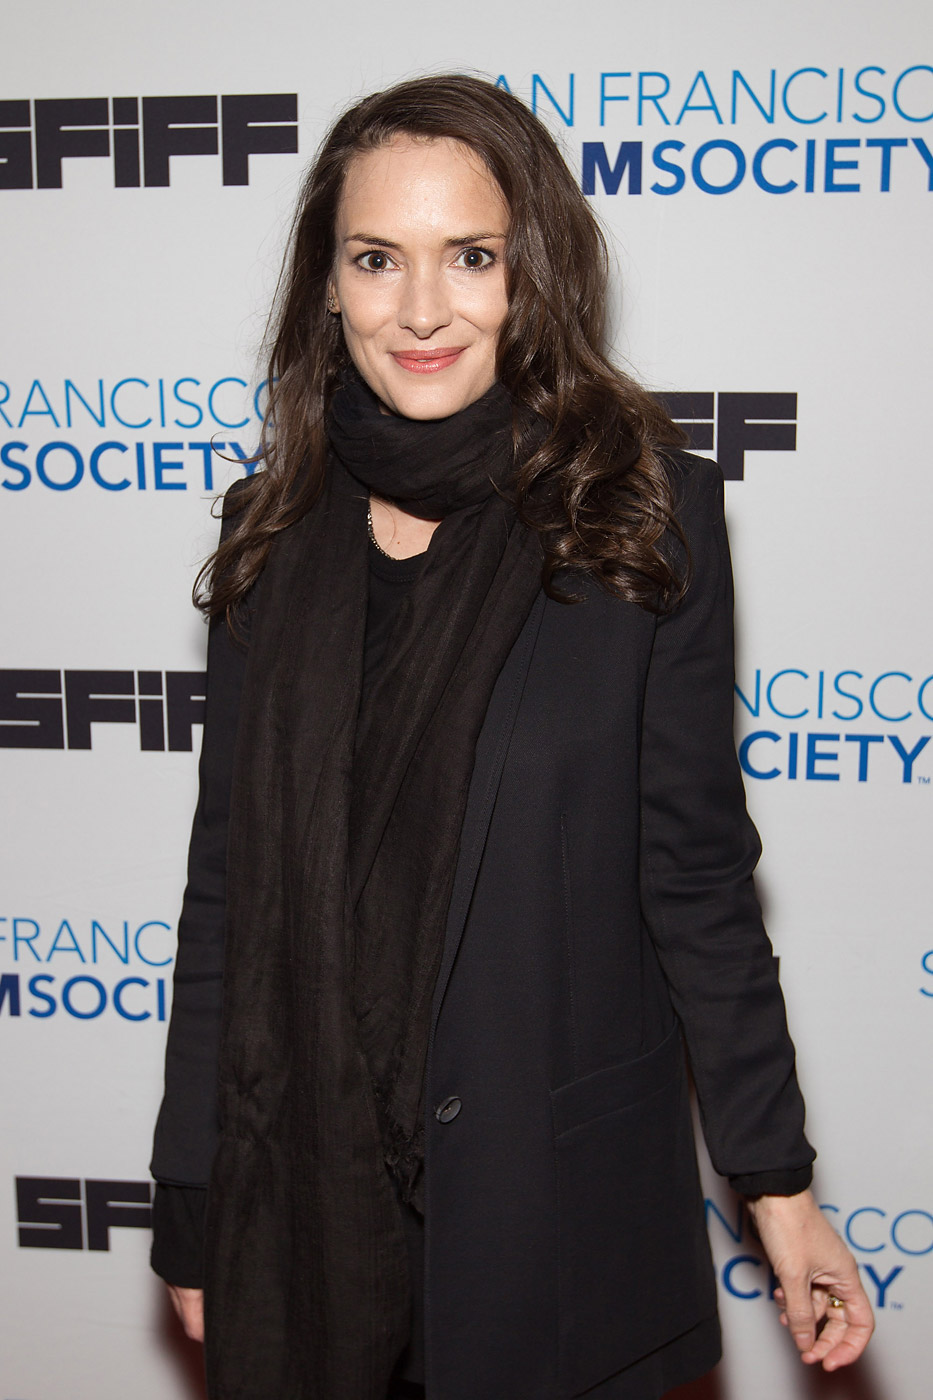 Winona Ryder arrives at the Closing Night Gala Premiere Of  Experimenter  at the 58th San Francisco International Film Festival at Castro Theater on May 7, 2015 in San Francisco.